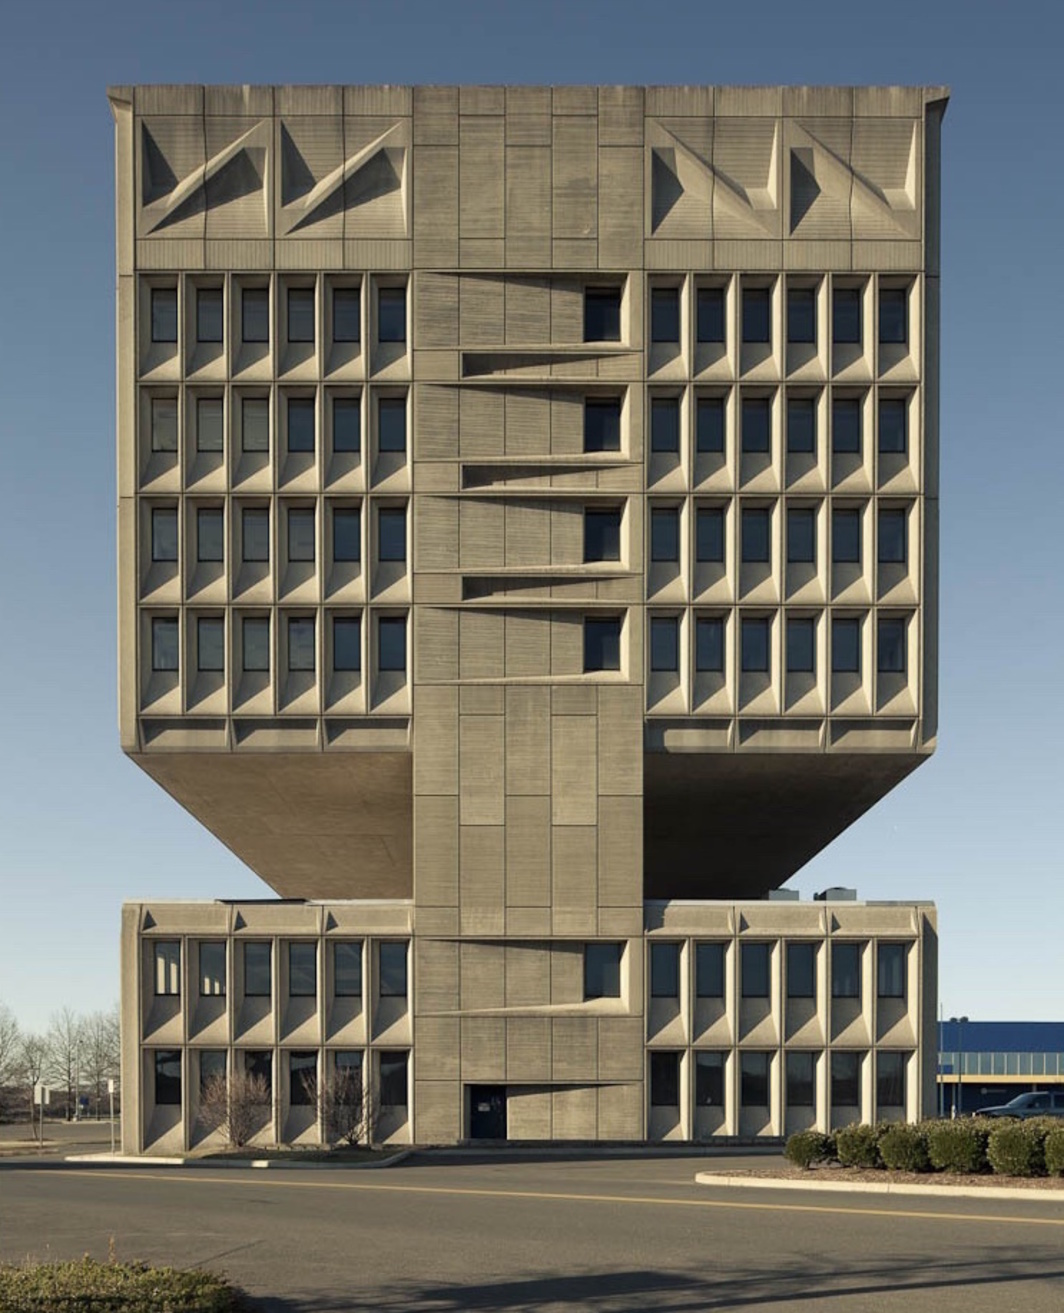 Marcel Breuer, Pirelli Building, 1969, New Haven.